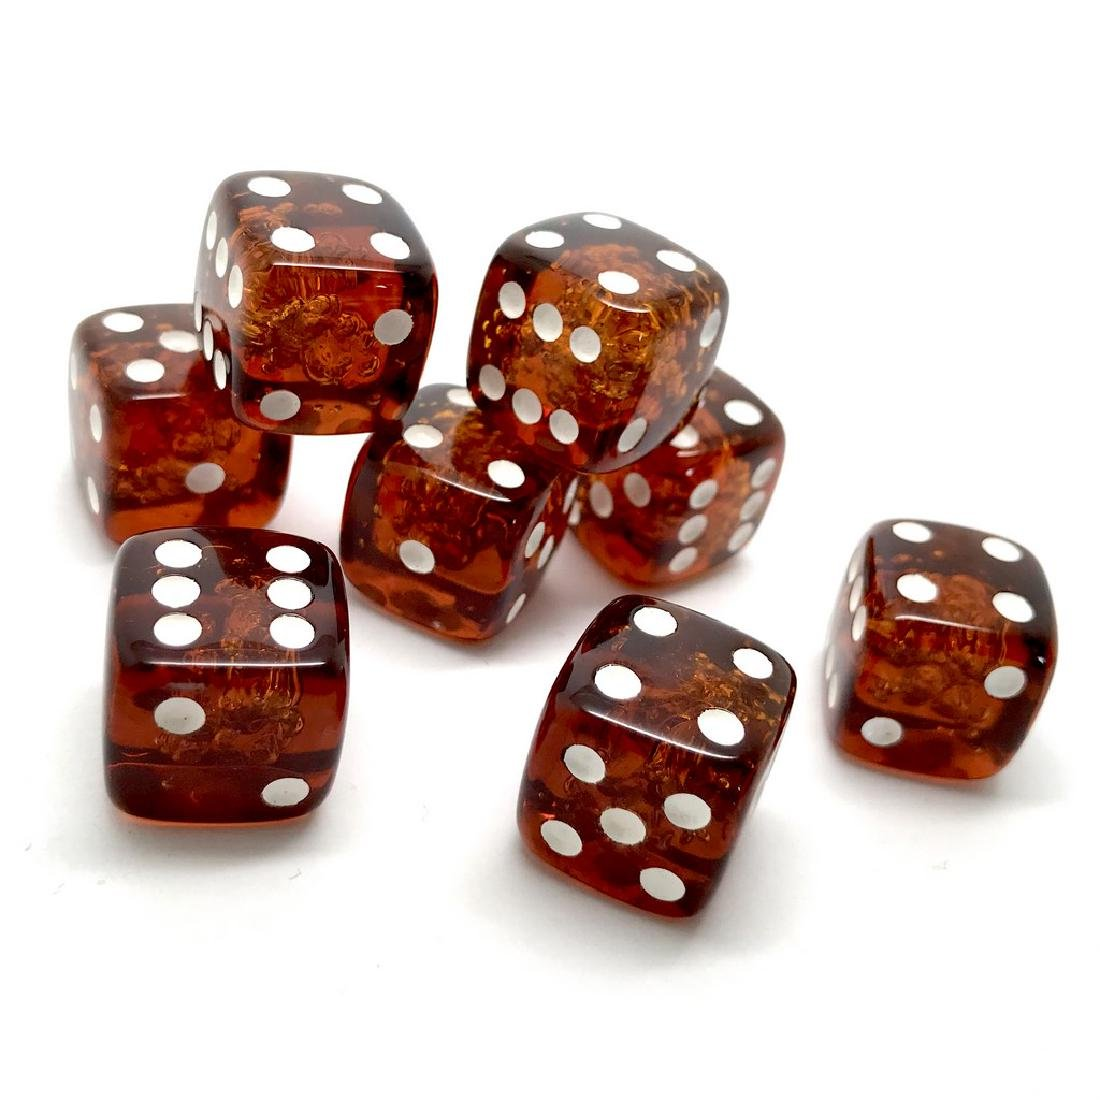 Baltic amber handcarved game dices 8pcs 17.5mm cognac - 3